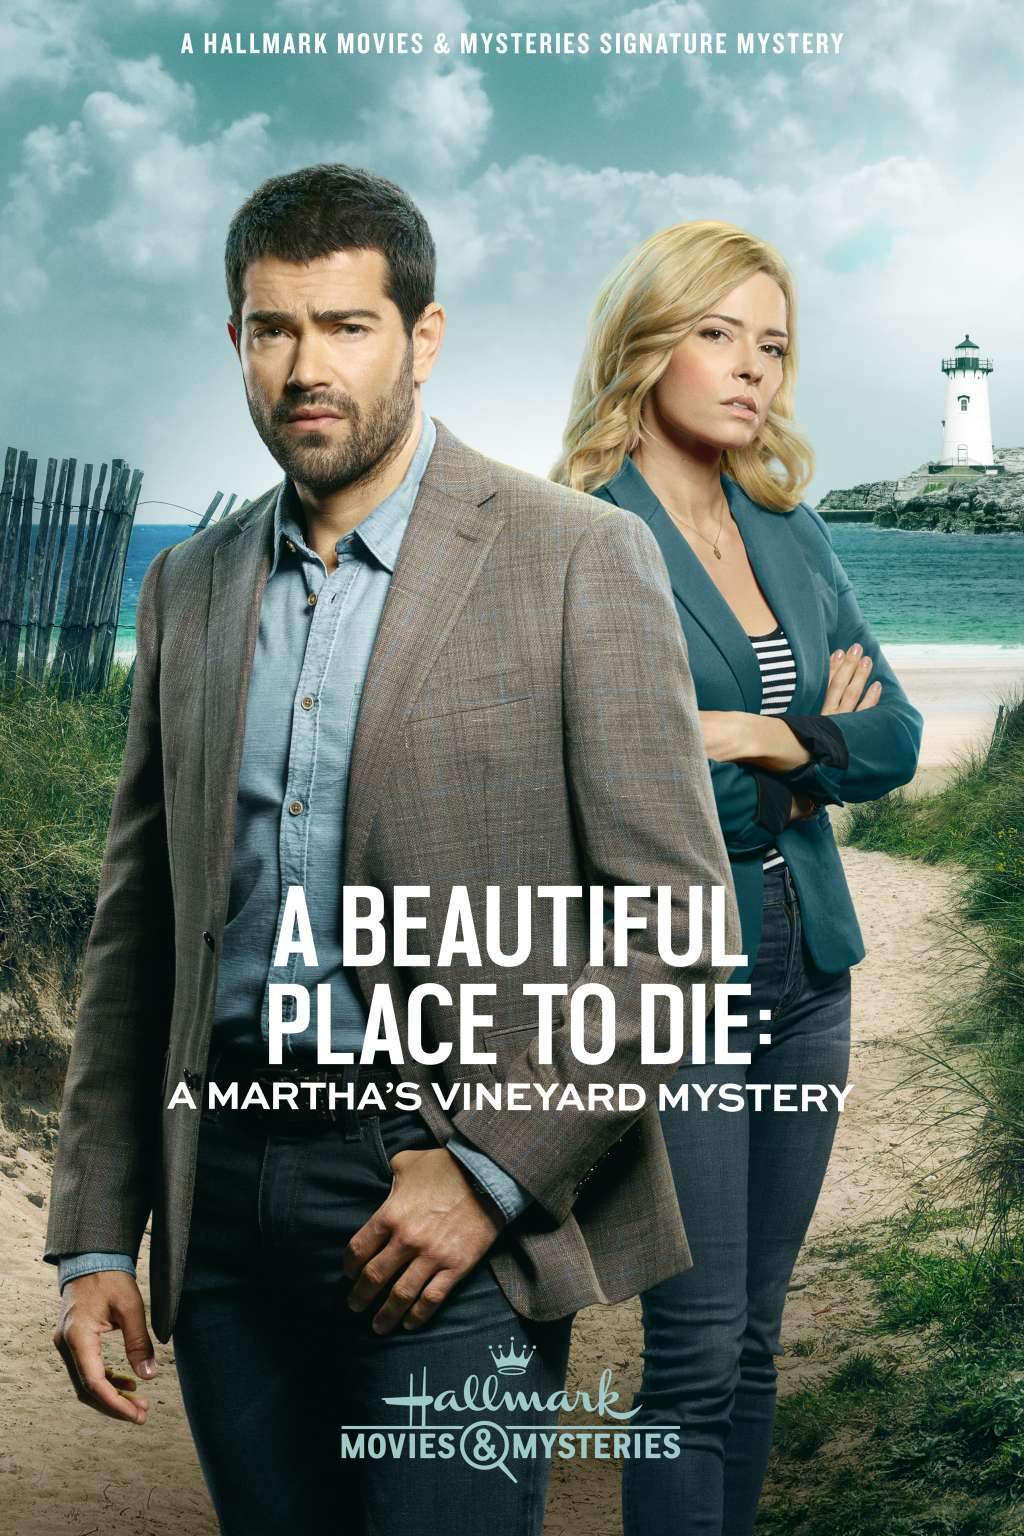 A Beautiful Place to Die: A Martha's Vineyard Mystery kapak